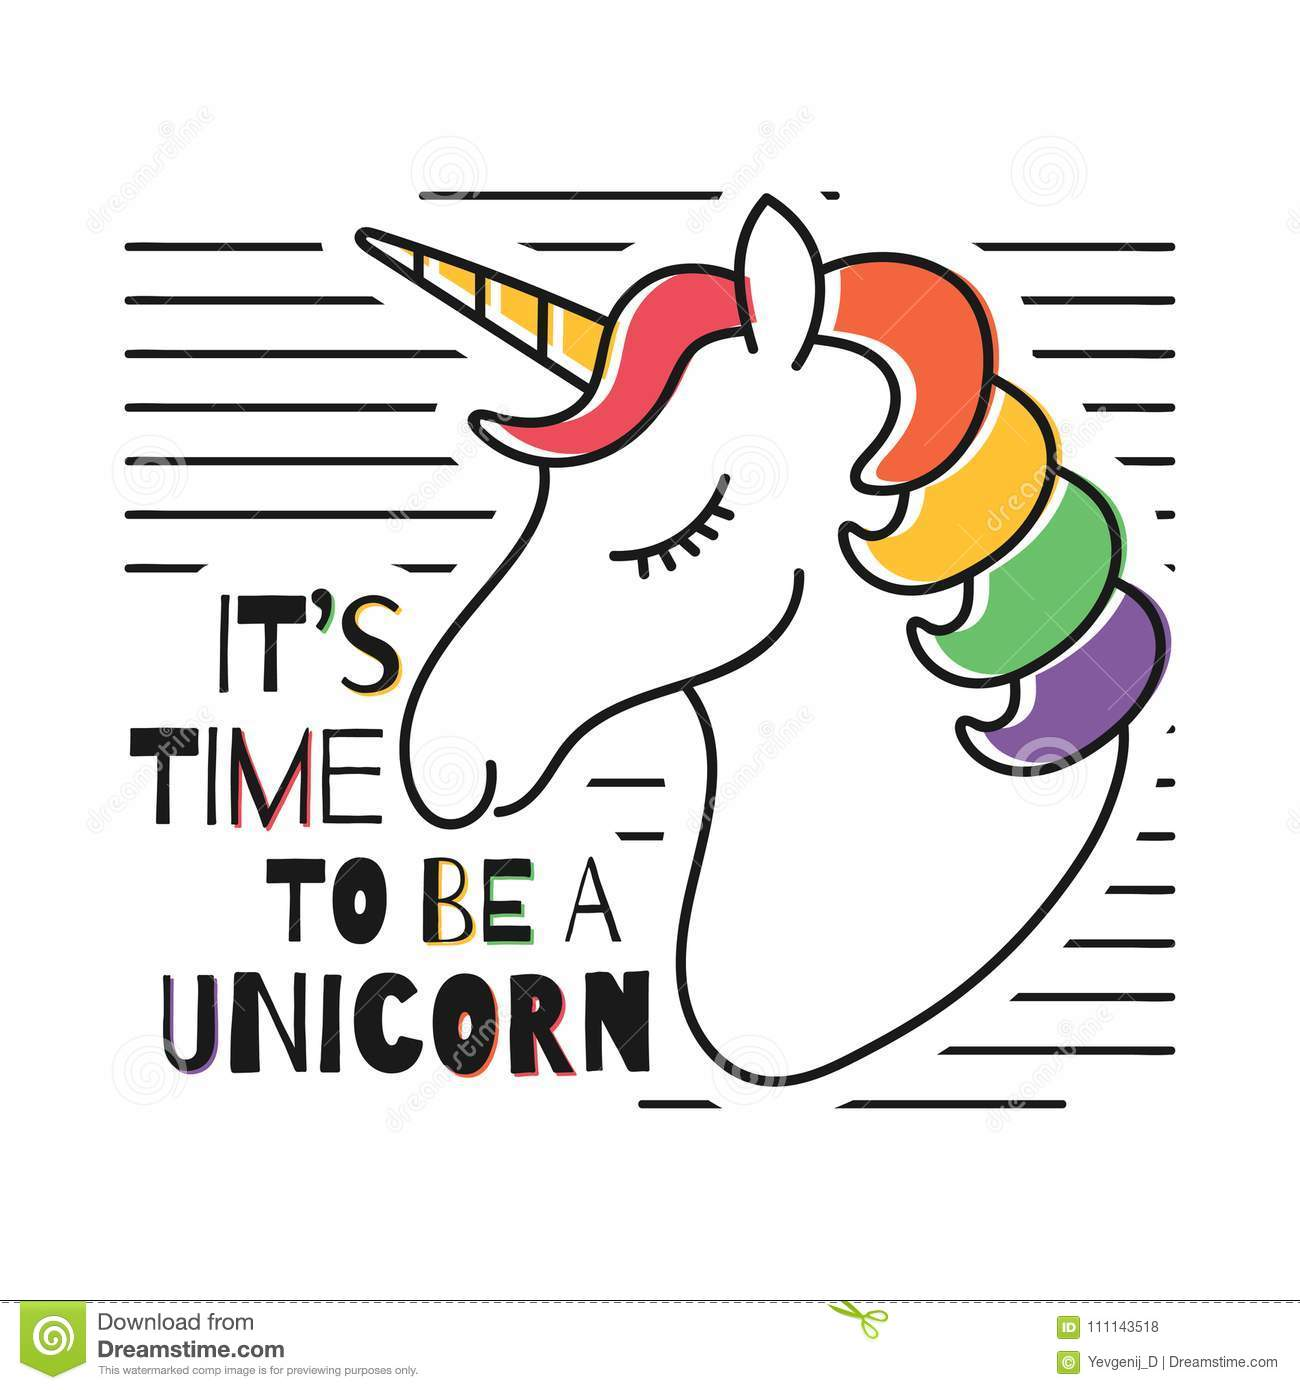 Cute magical unicorn for t-shirt print. Childish t-shirt design with rainbow colors